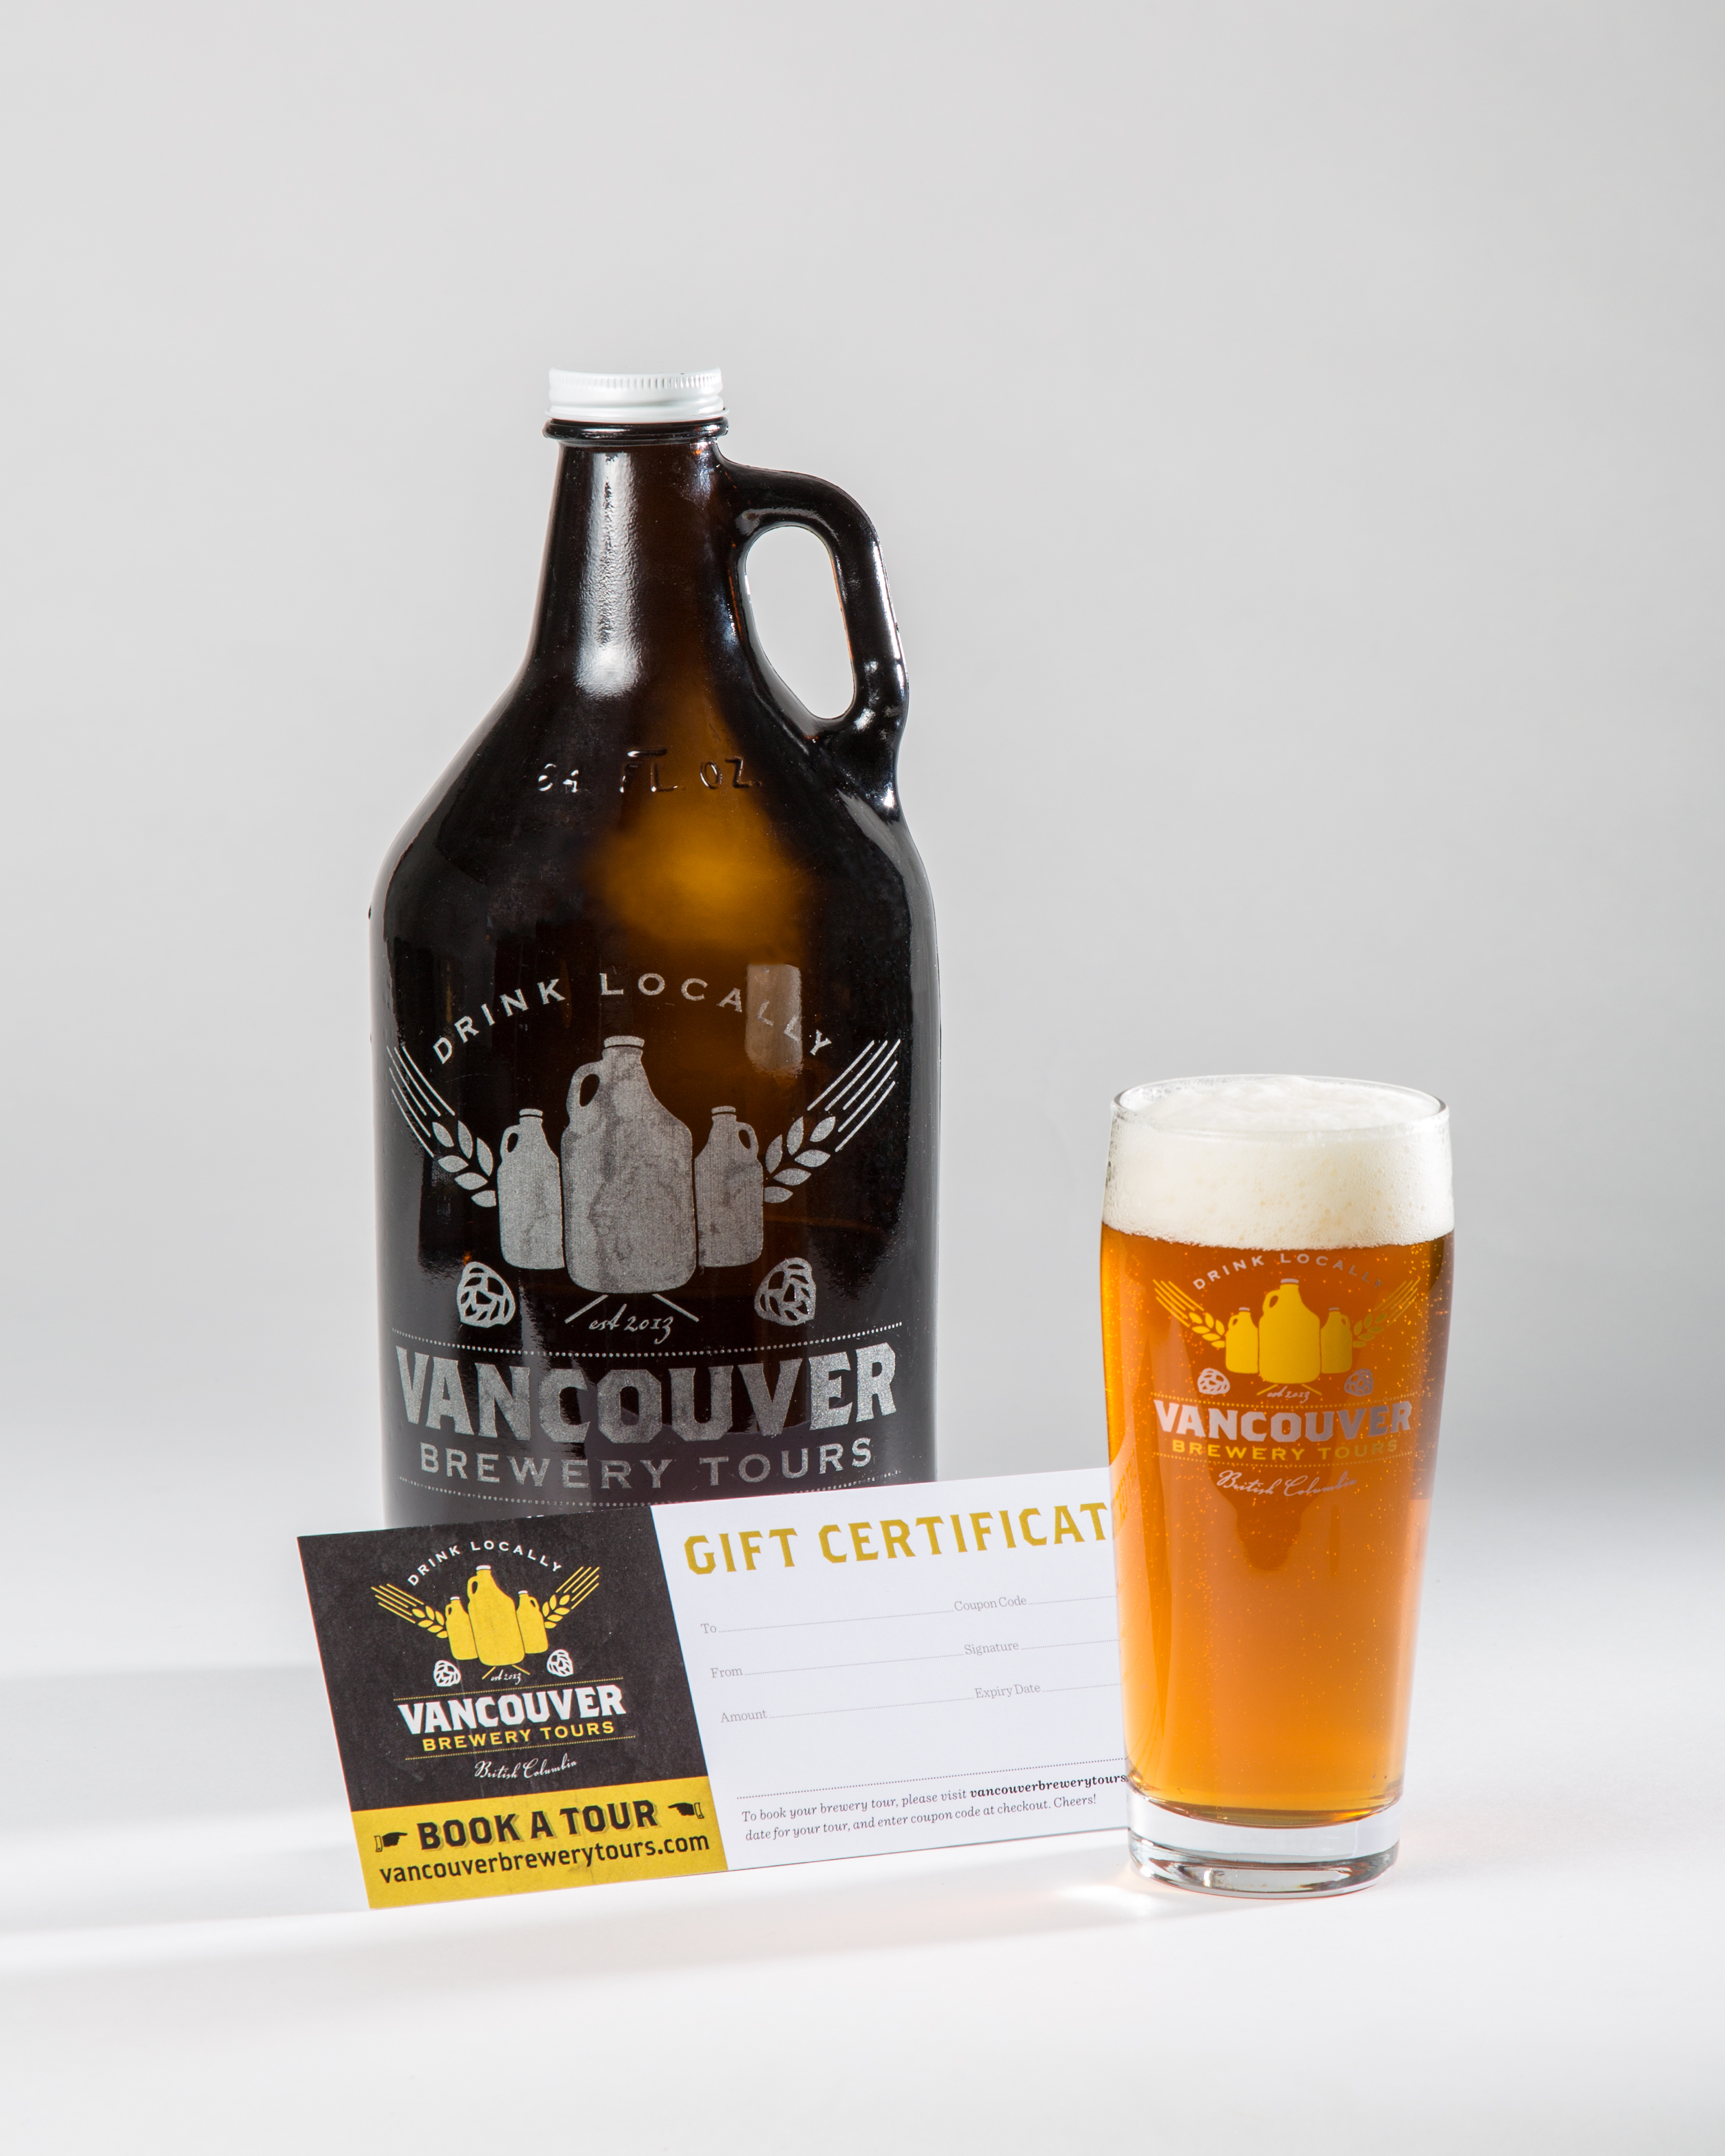 Vancouver Brewery Tours Gift Certificate